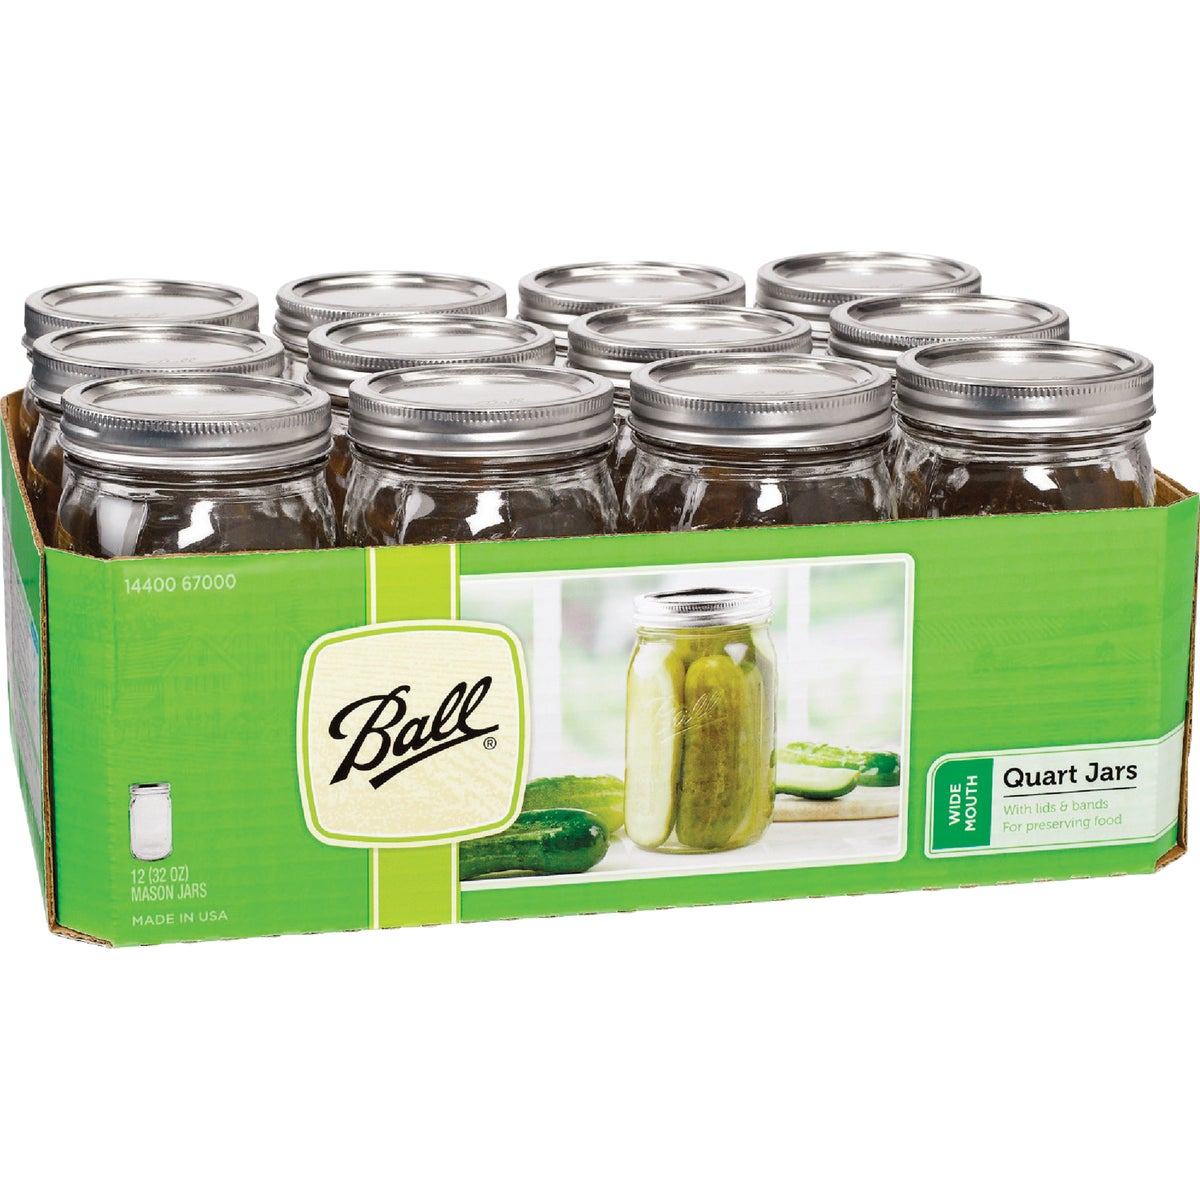 12 1QT W/M MASON JARS - 67000 by Jarden Home Brands